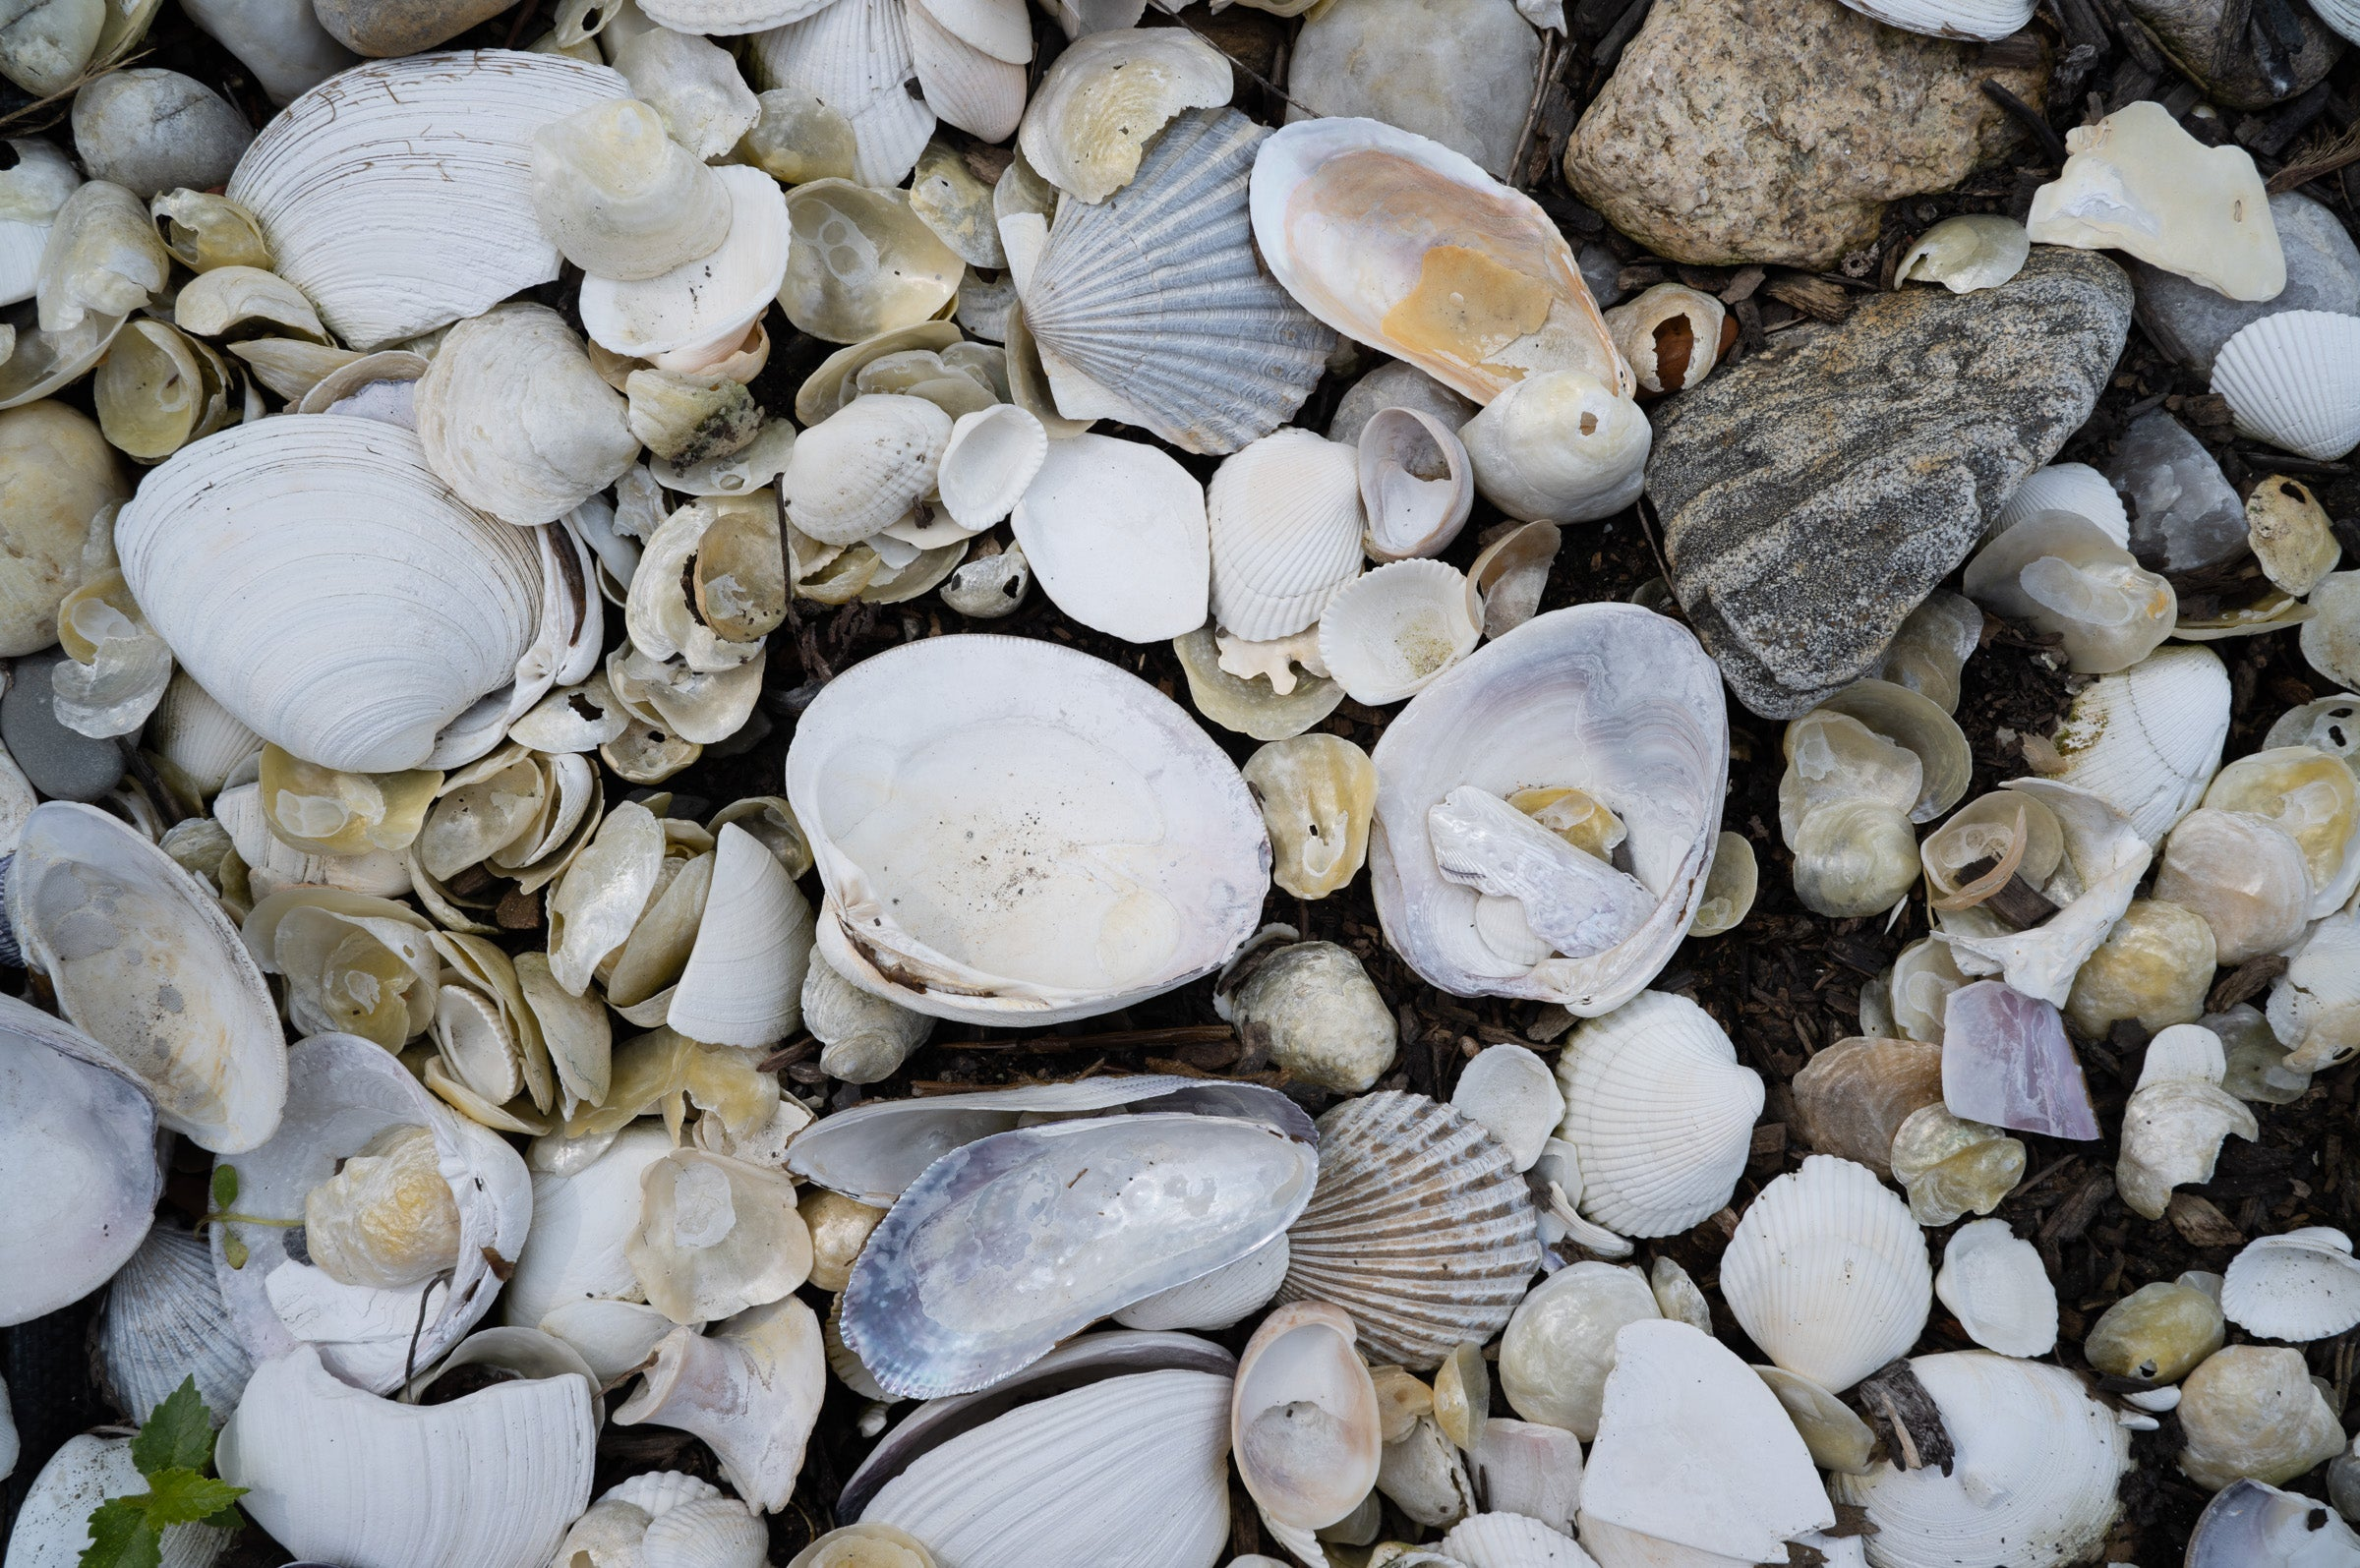 Shells seen in strong clarity with the Sigma camera lens